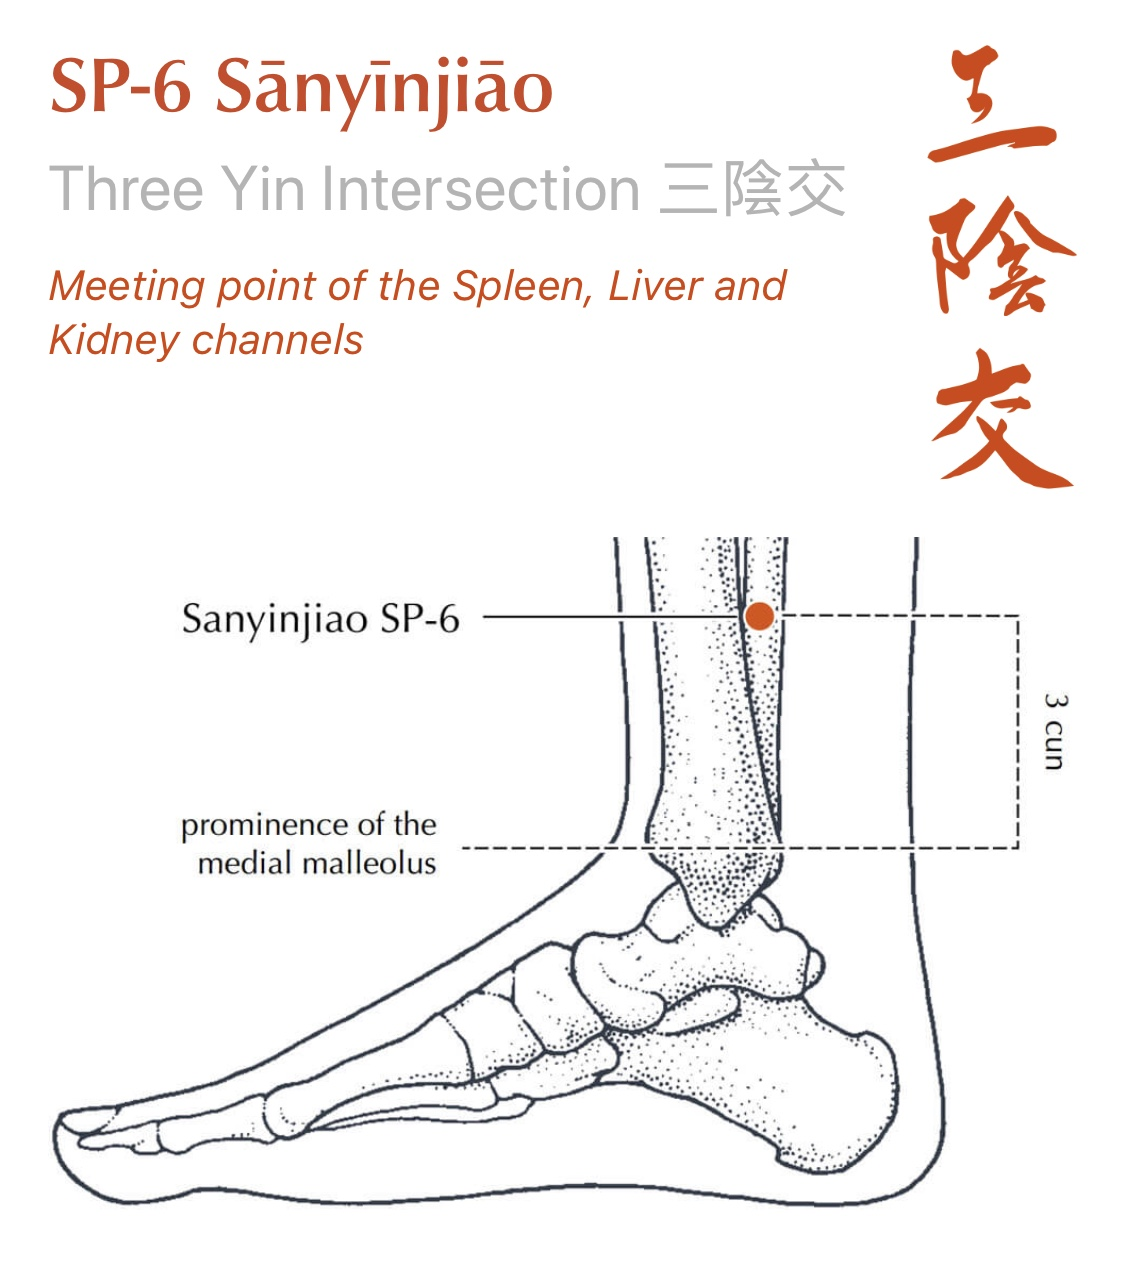 Image courtesy of Manual of Acupuncture App by Peter Deadman